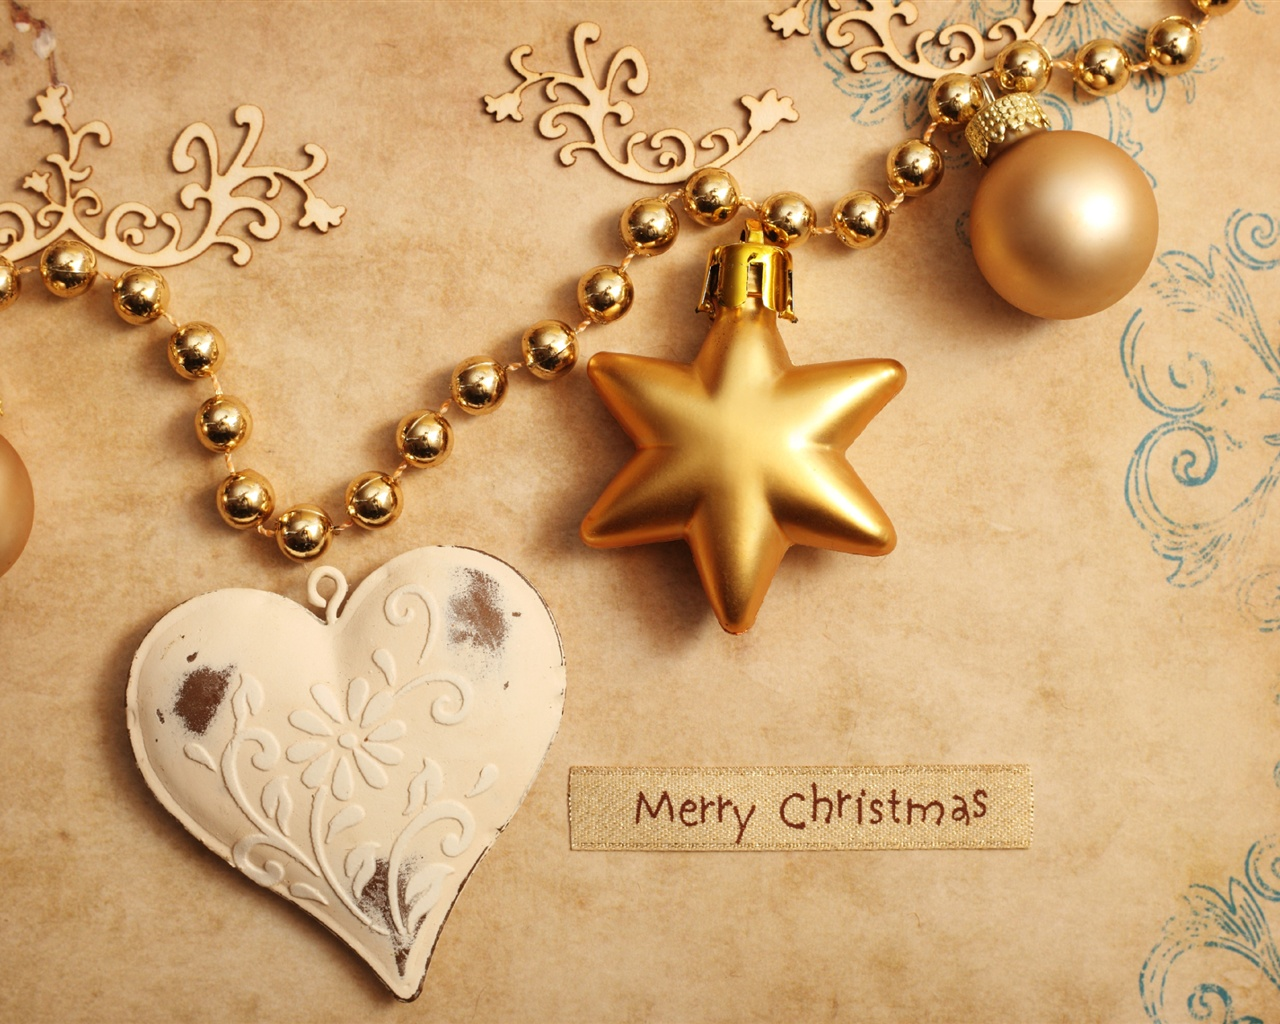 Christmas ornaments wallpaper - 1280x1024